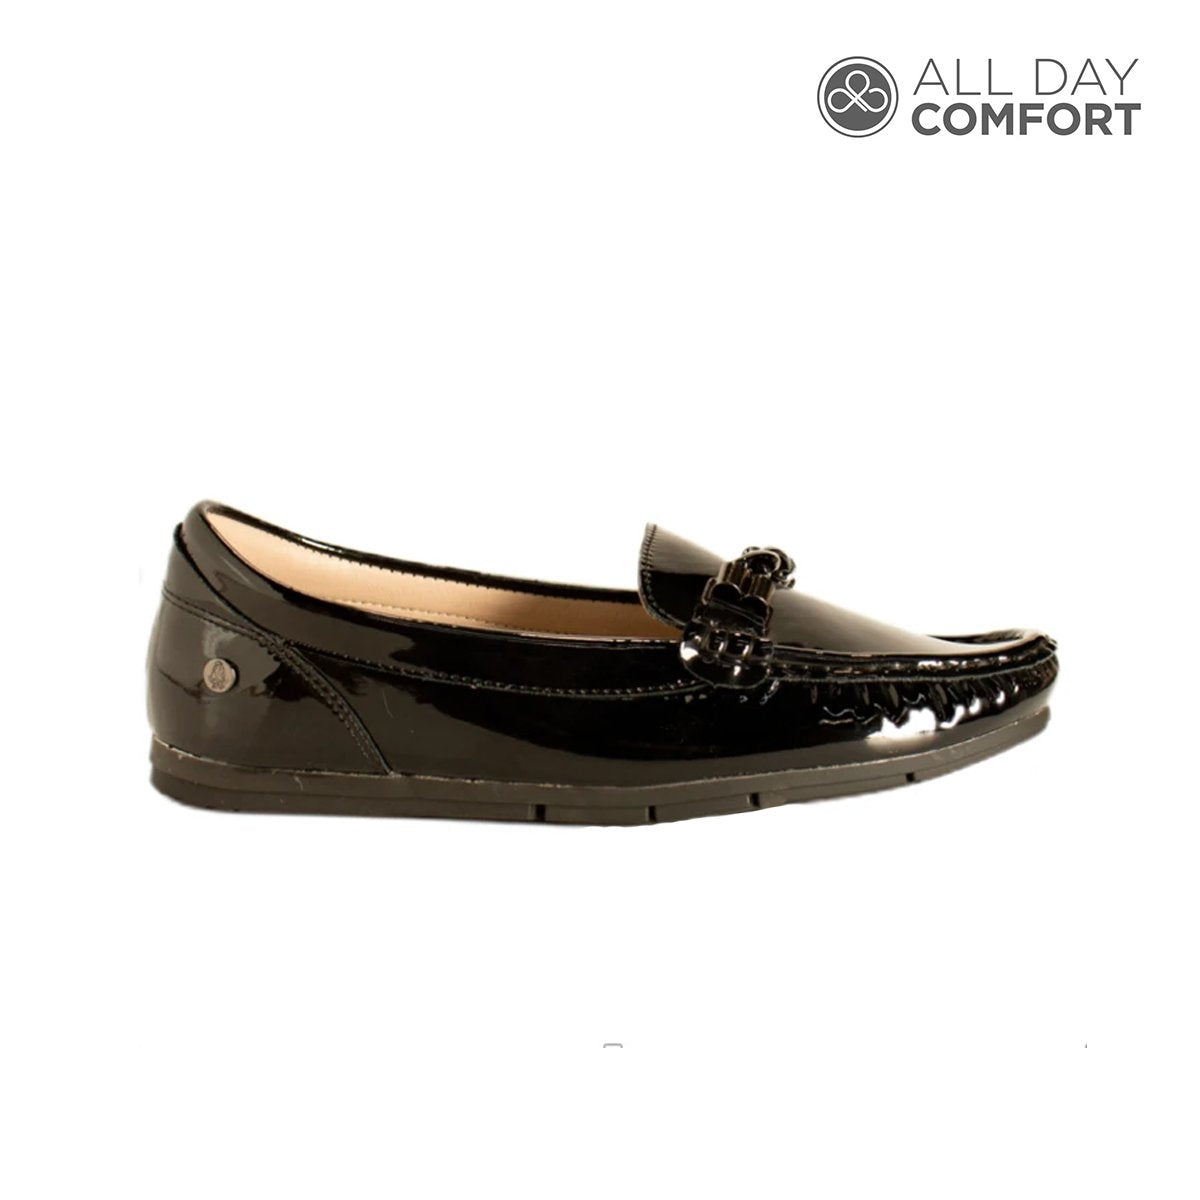 mocasin allison - color negro, 34995, all day comfort, calzado, hush puppies, mocasin, mujer, negro, sintetico, precio regular comprar, en linea, online, delivery, Honduras, zapatos